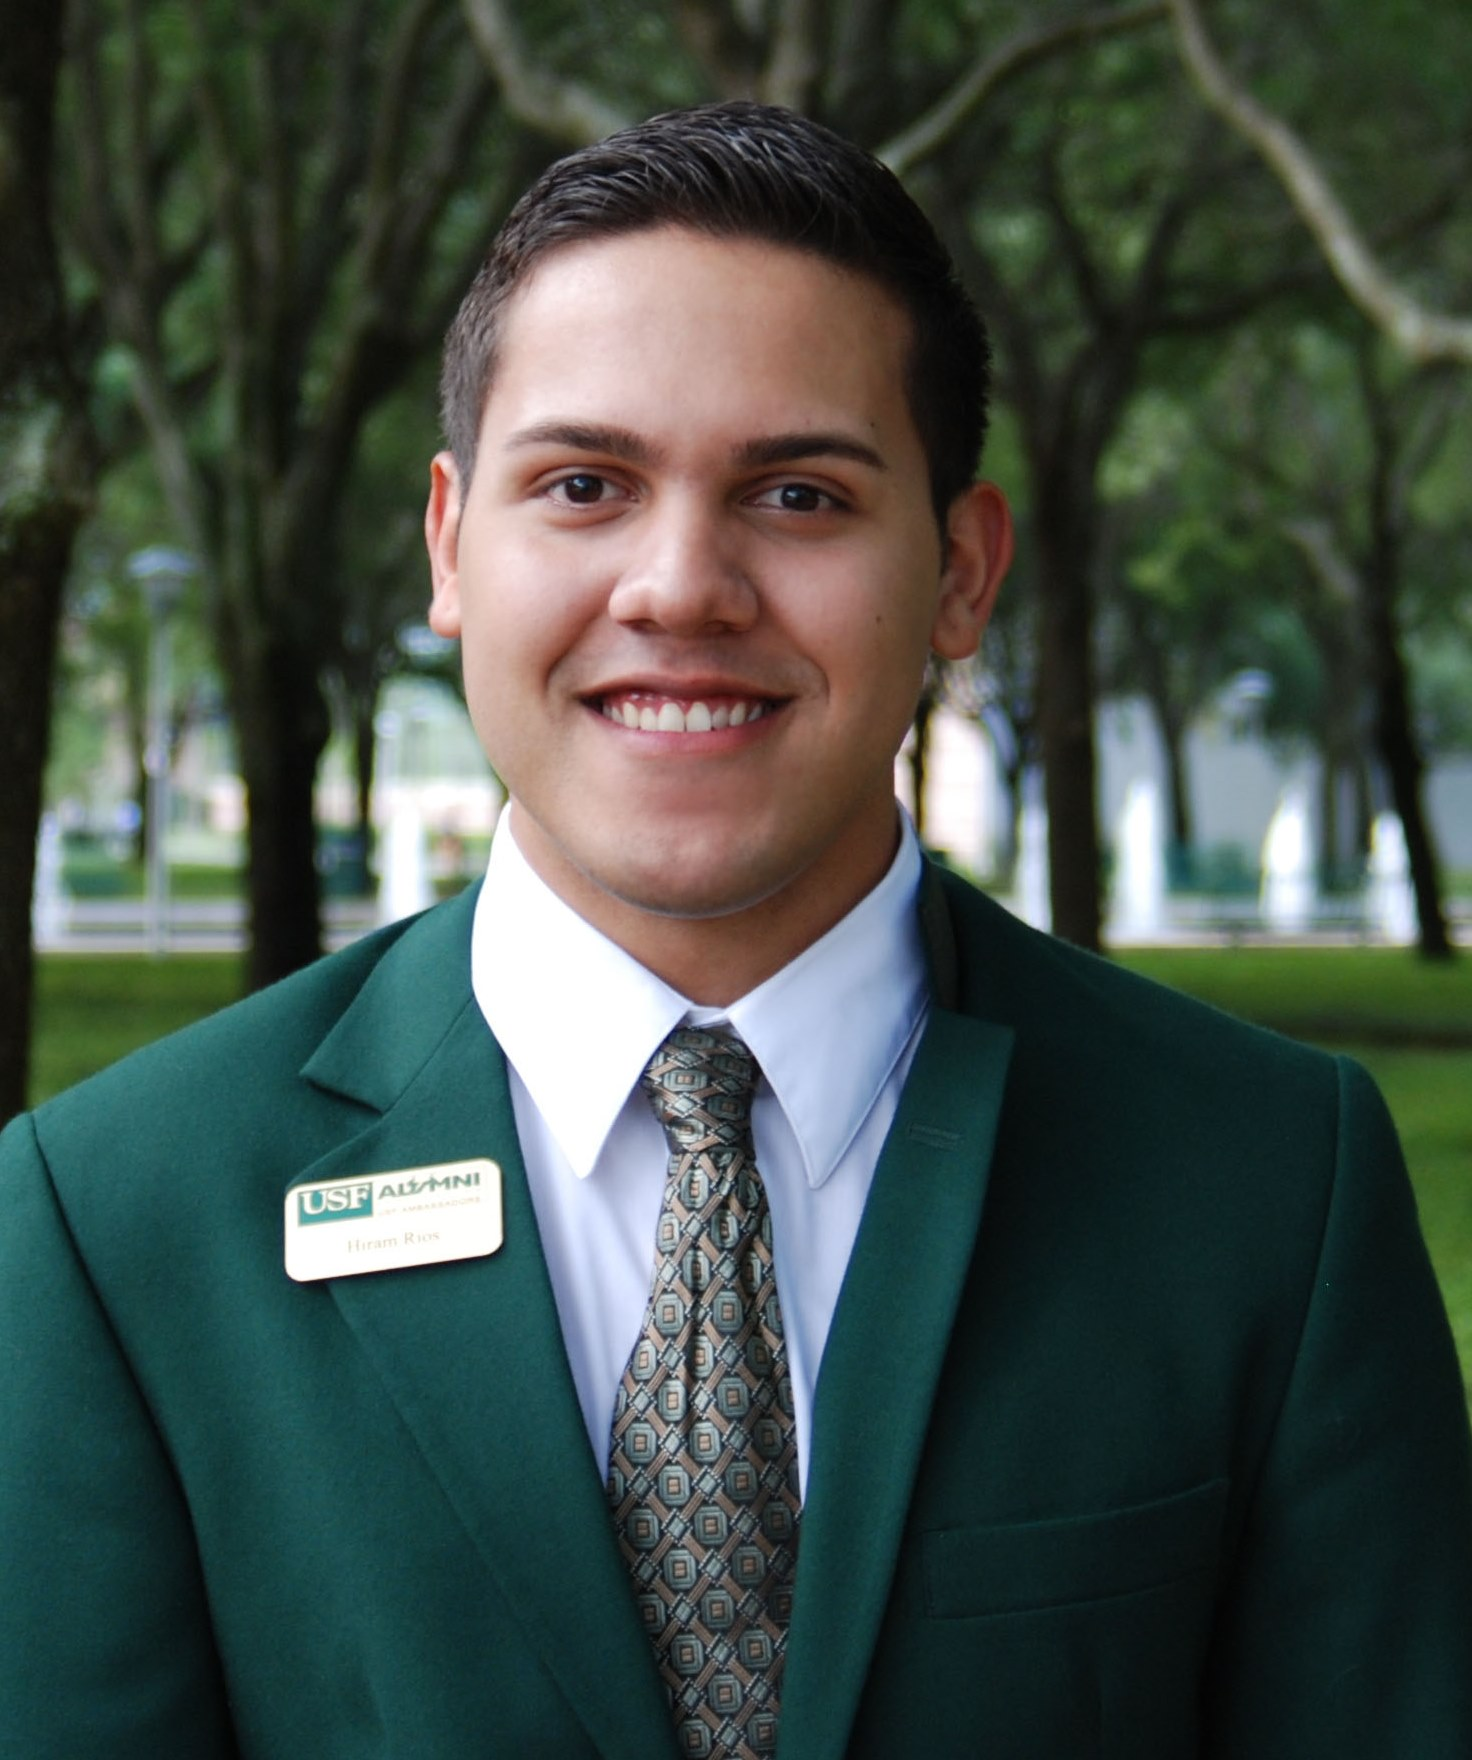 What does it take to get into university of south florida pharmacy school?